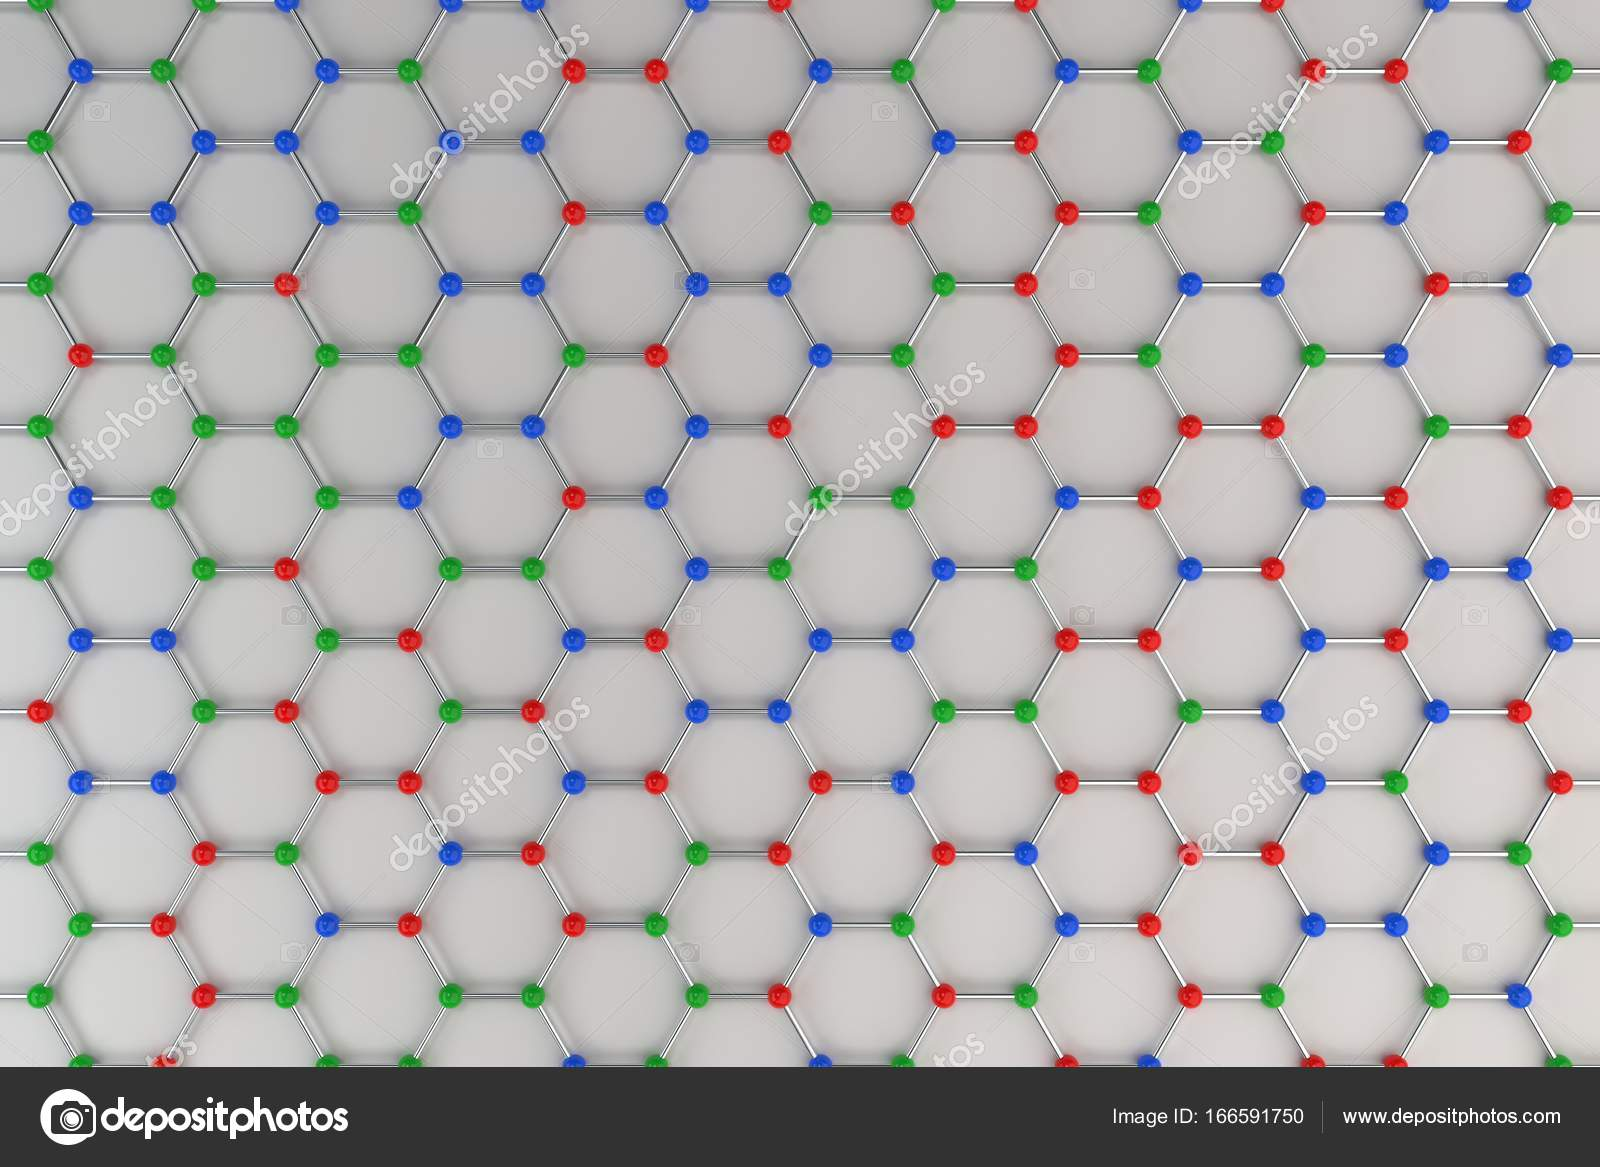 Graphene atomic structure on white background stock photo graphene atomic structure on white background stock photo ccuart Images